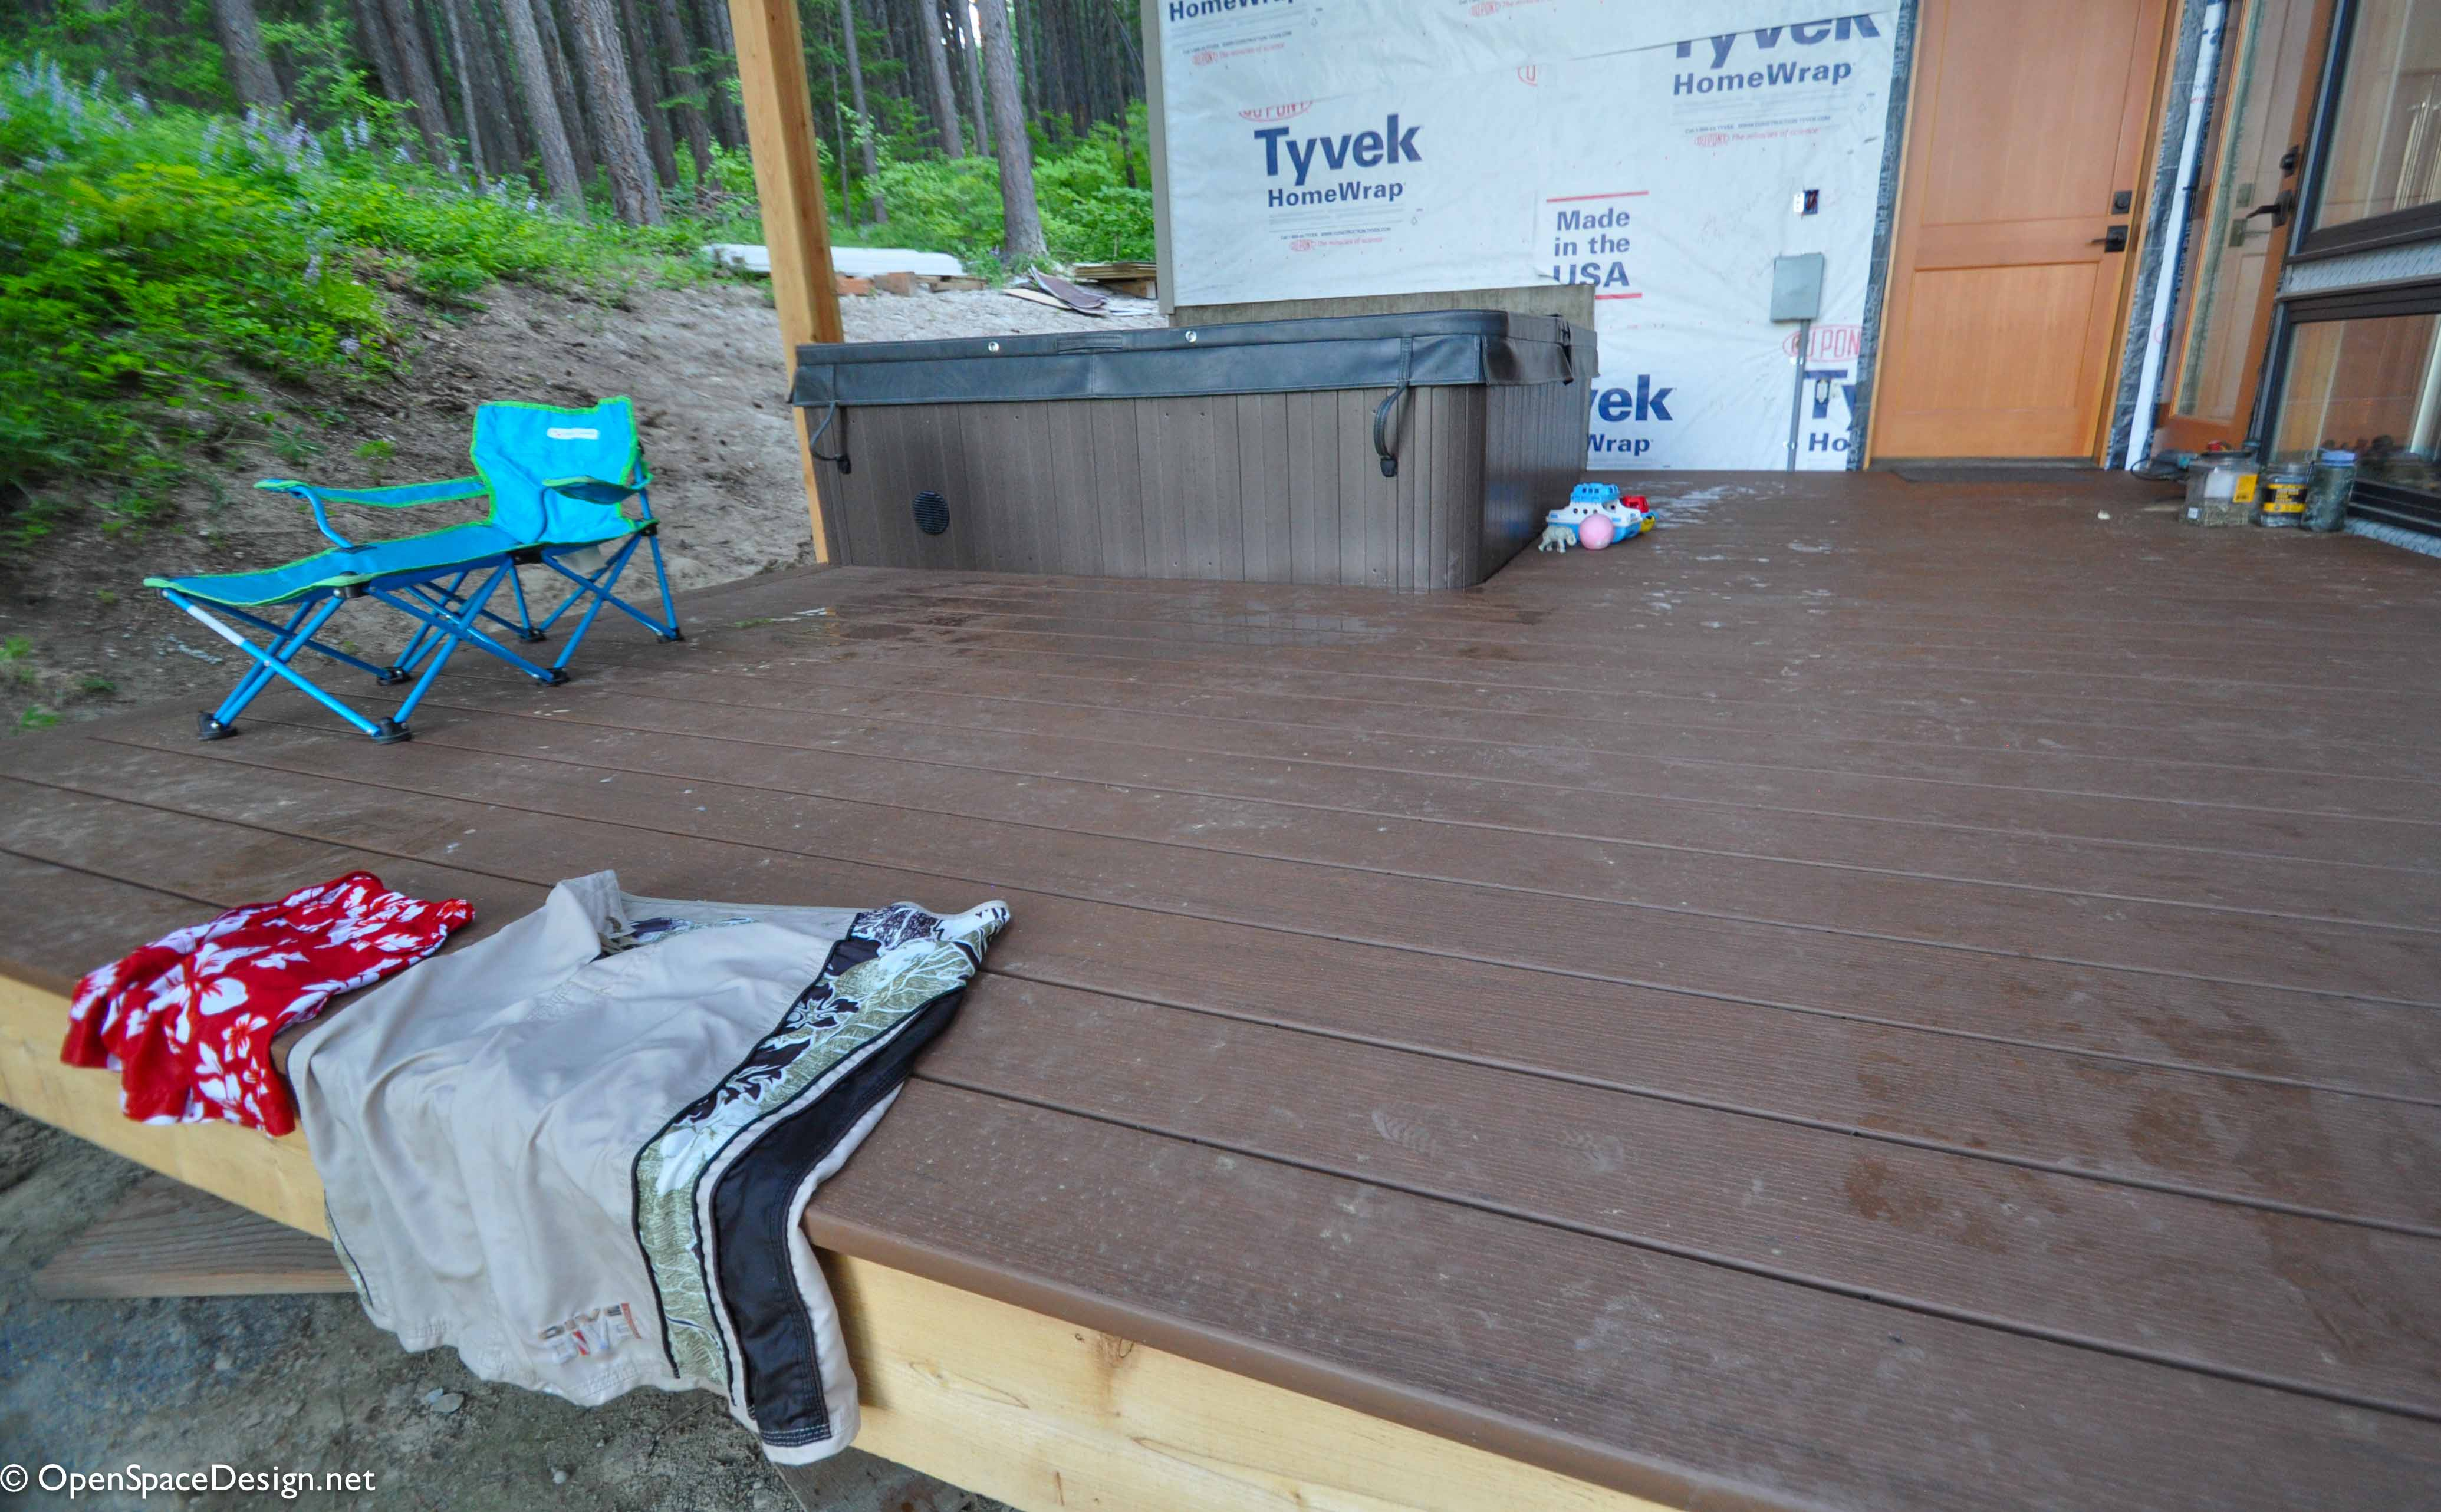 A big upside to using a composite deck material is that chlorine doesn't stain it